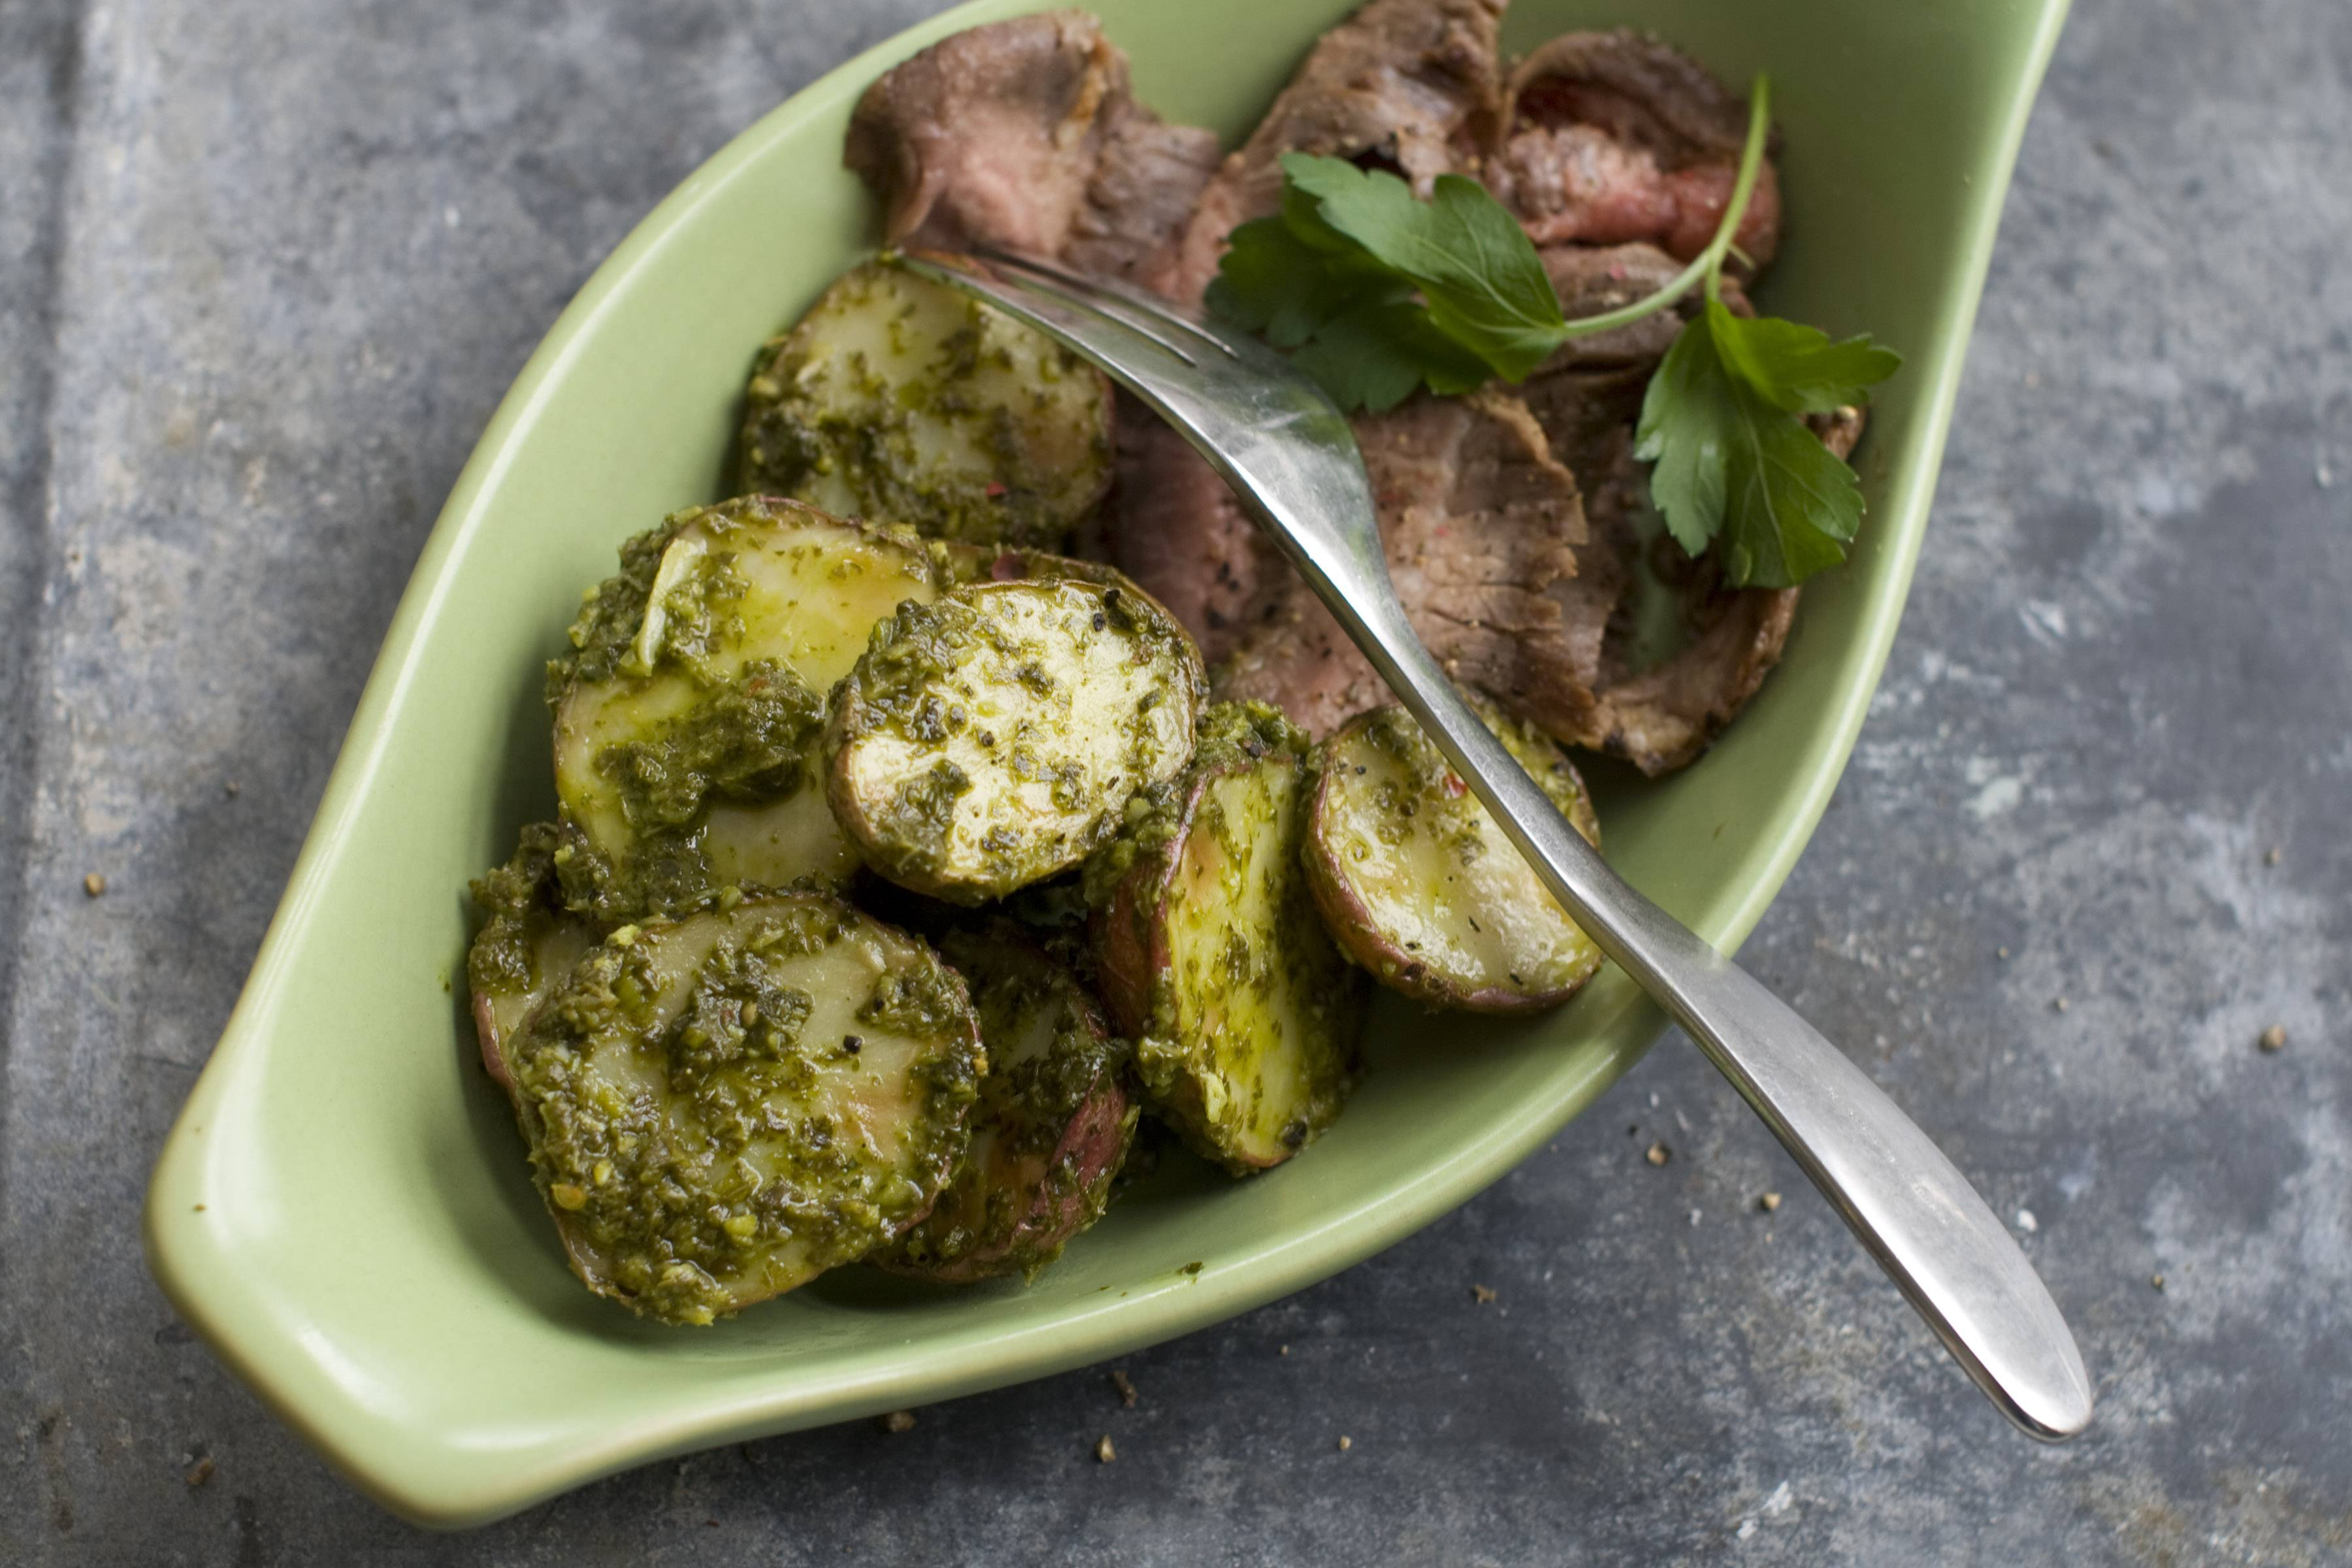 A herbaceous sauce makes roasted potatoes the perfect side for a St. Patrick's Day meal.